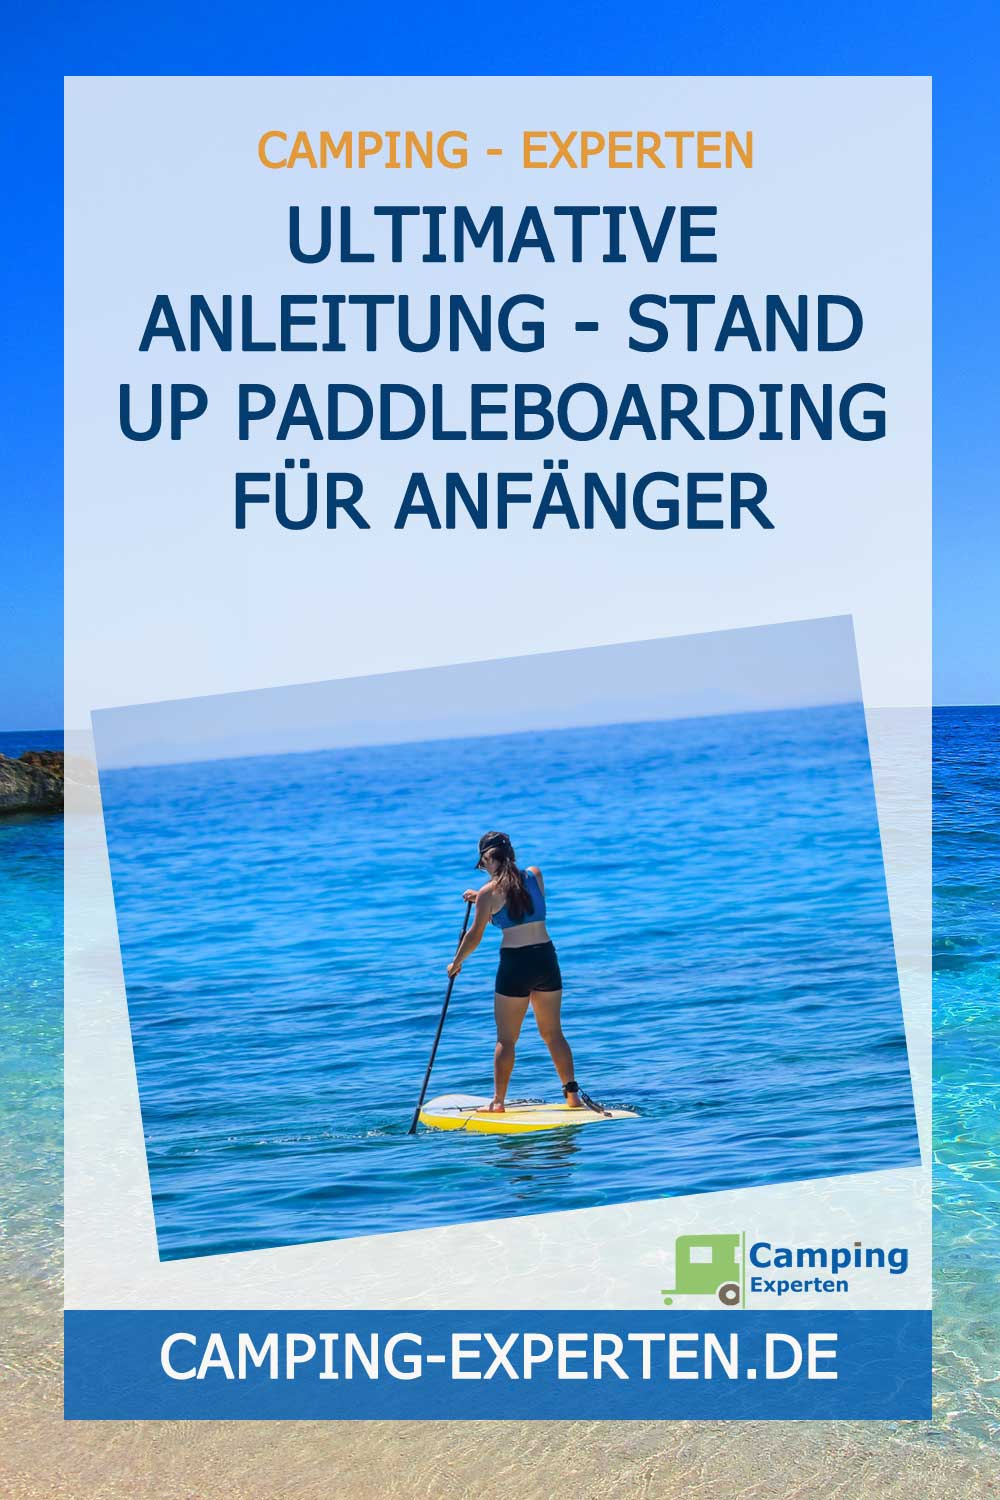 Ultimative Anleitung – Stand Up Paddleboarding für Anfänger